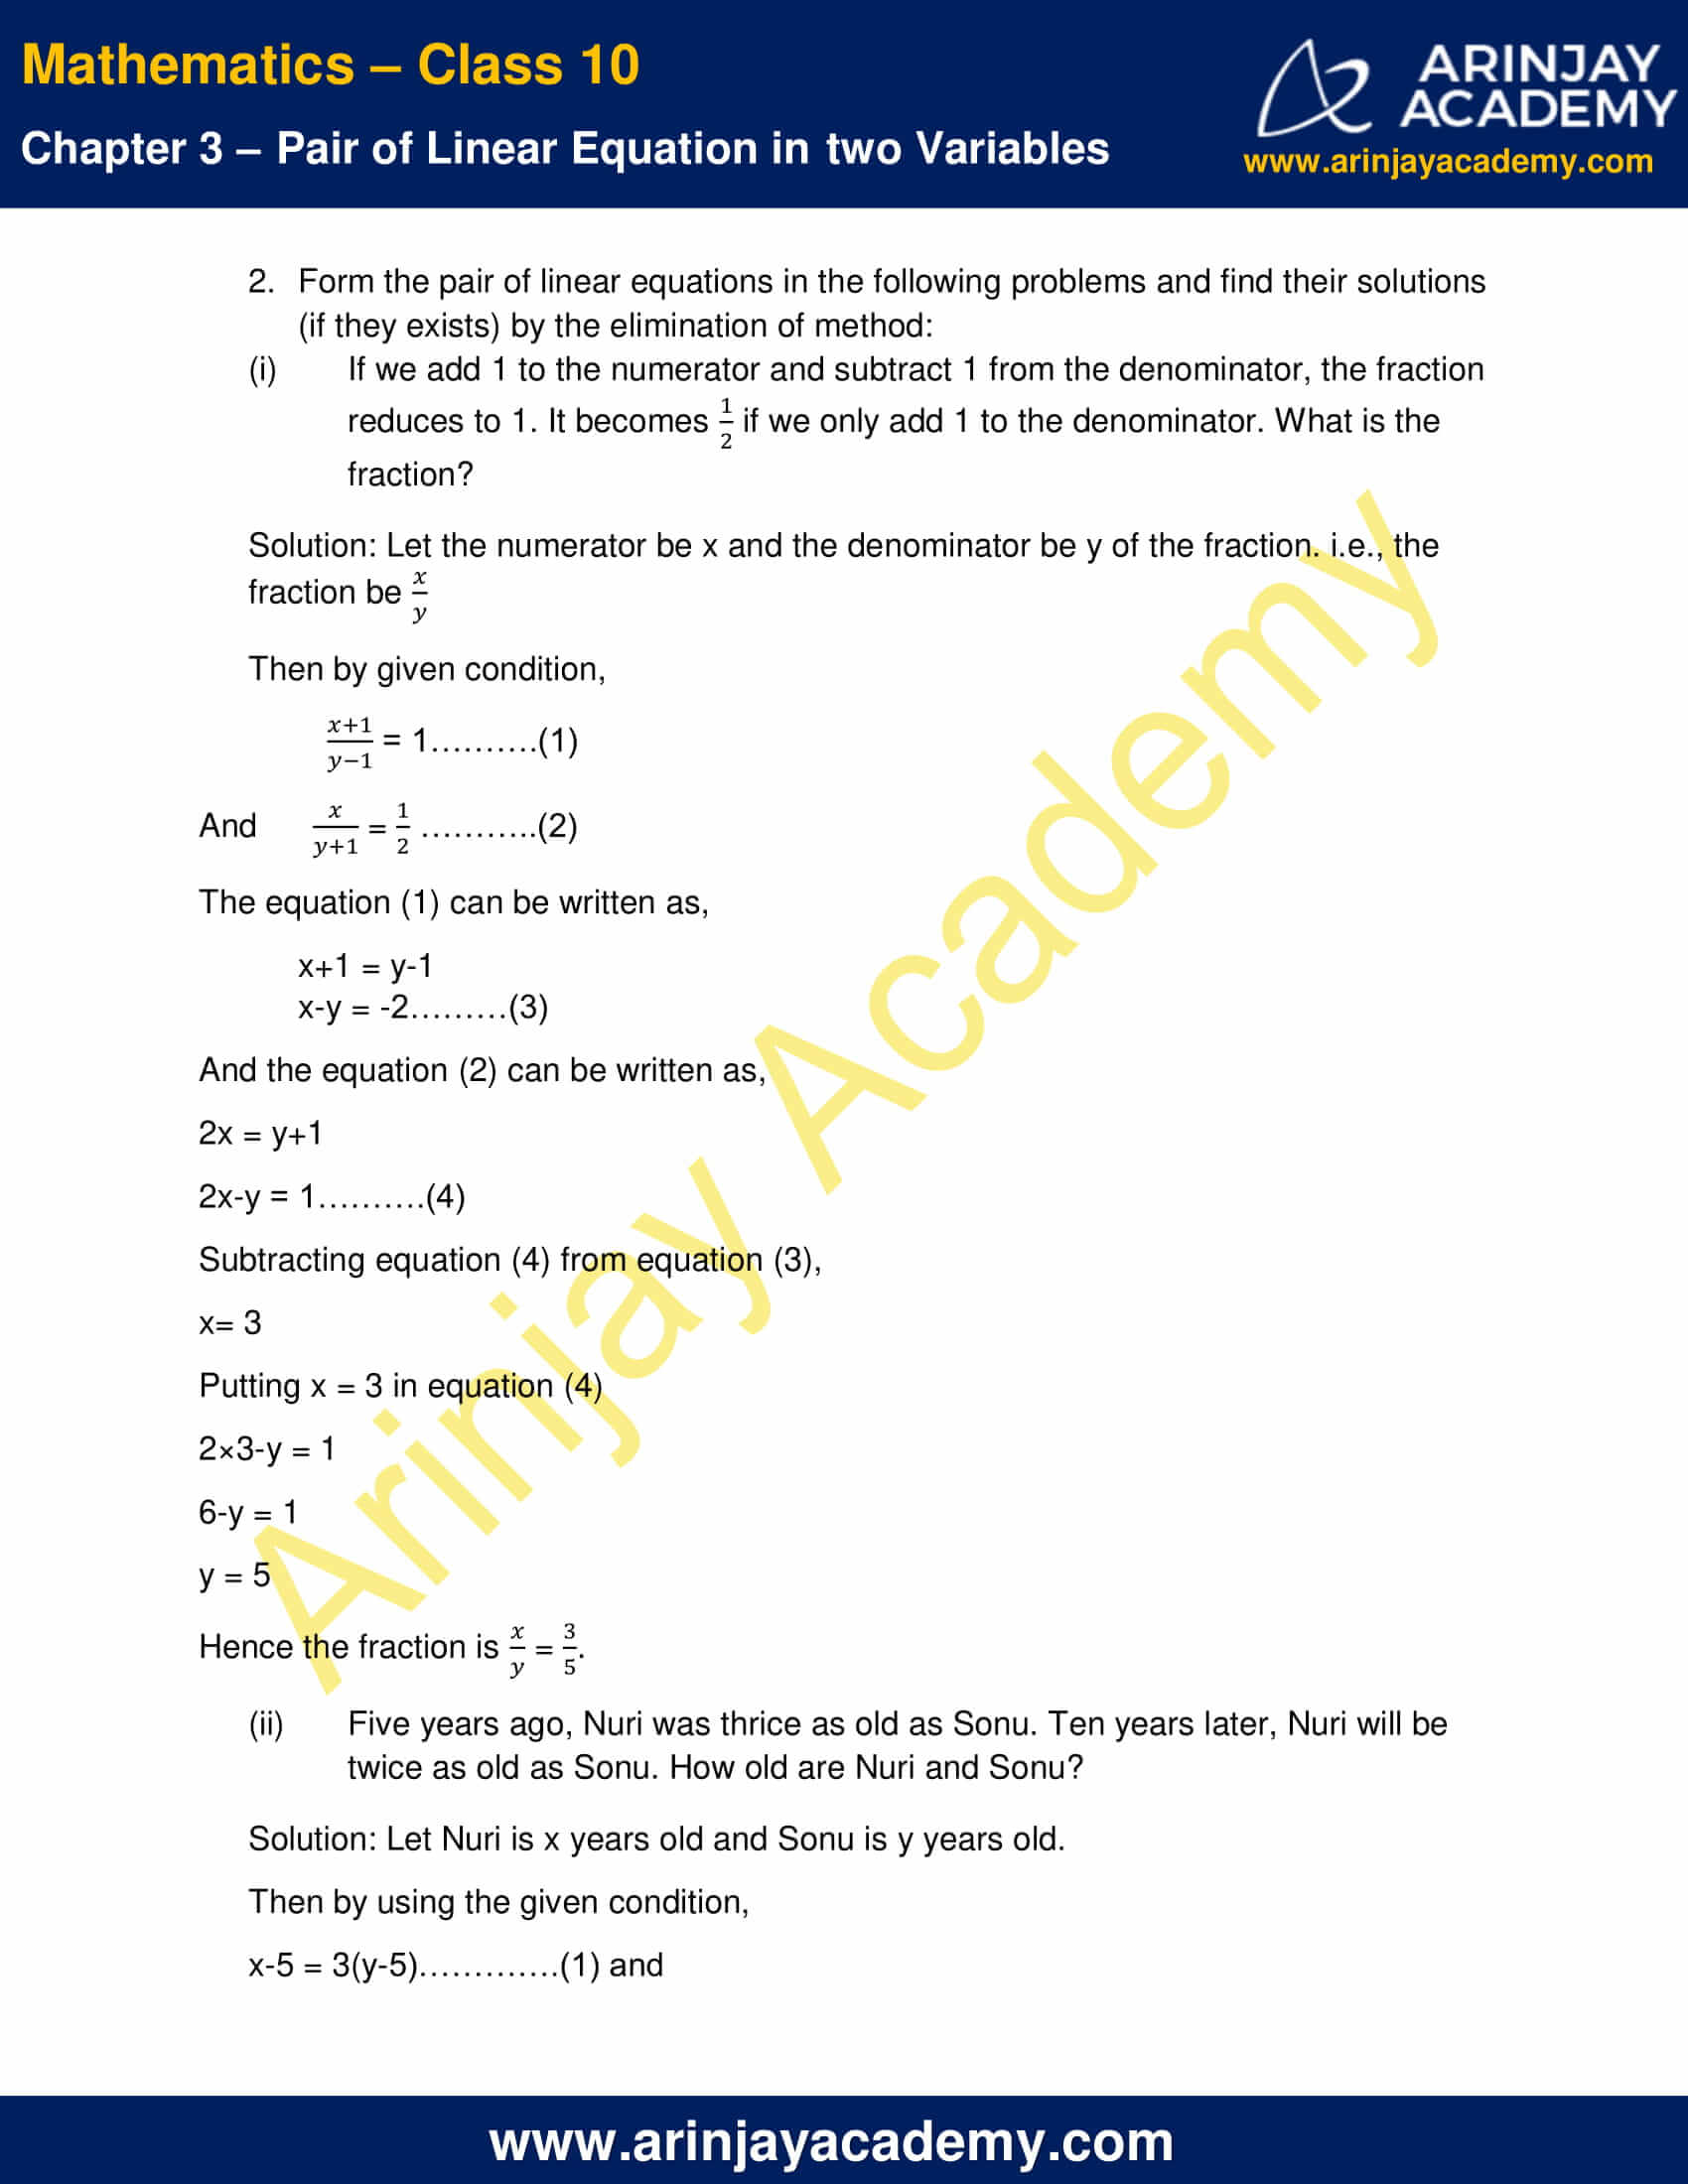 NCERT Solutions For Class 10 Maths Chapter 3 Exercise 3.4 image 6